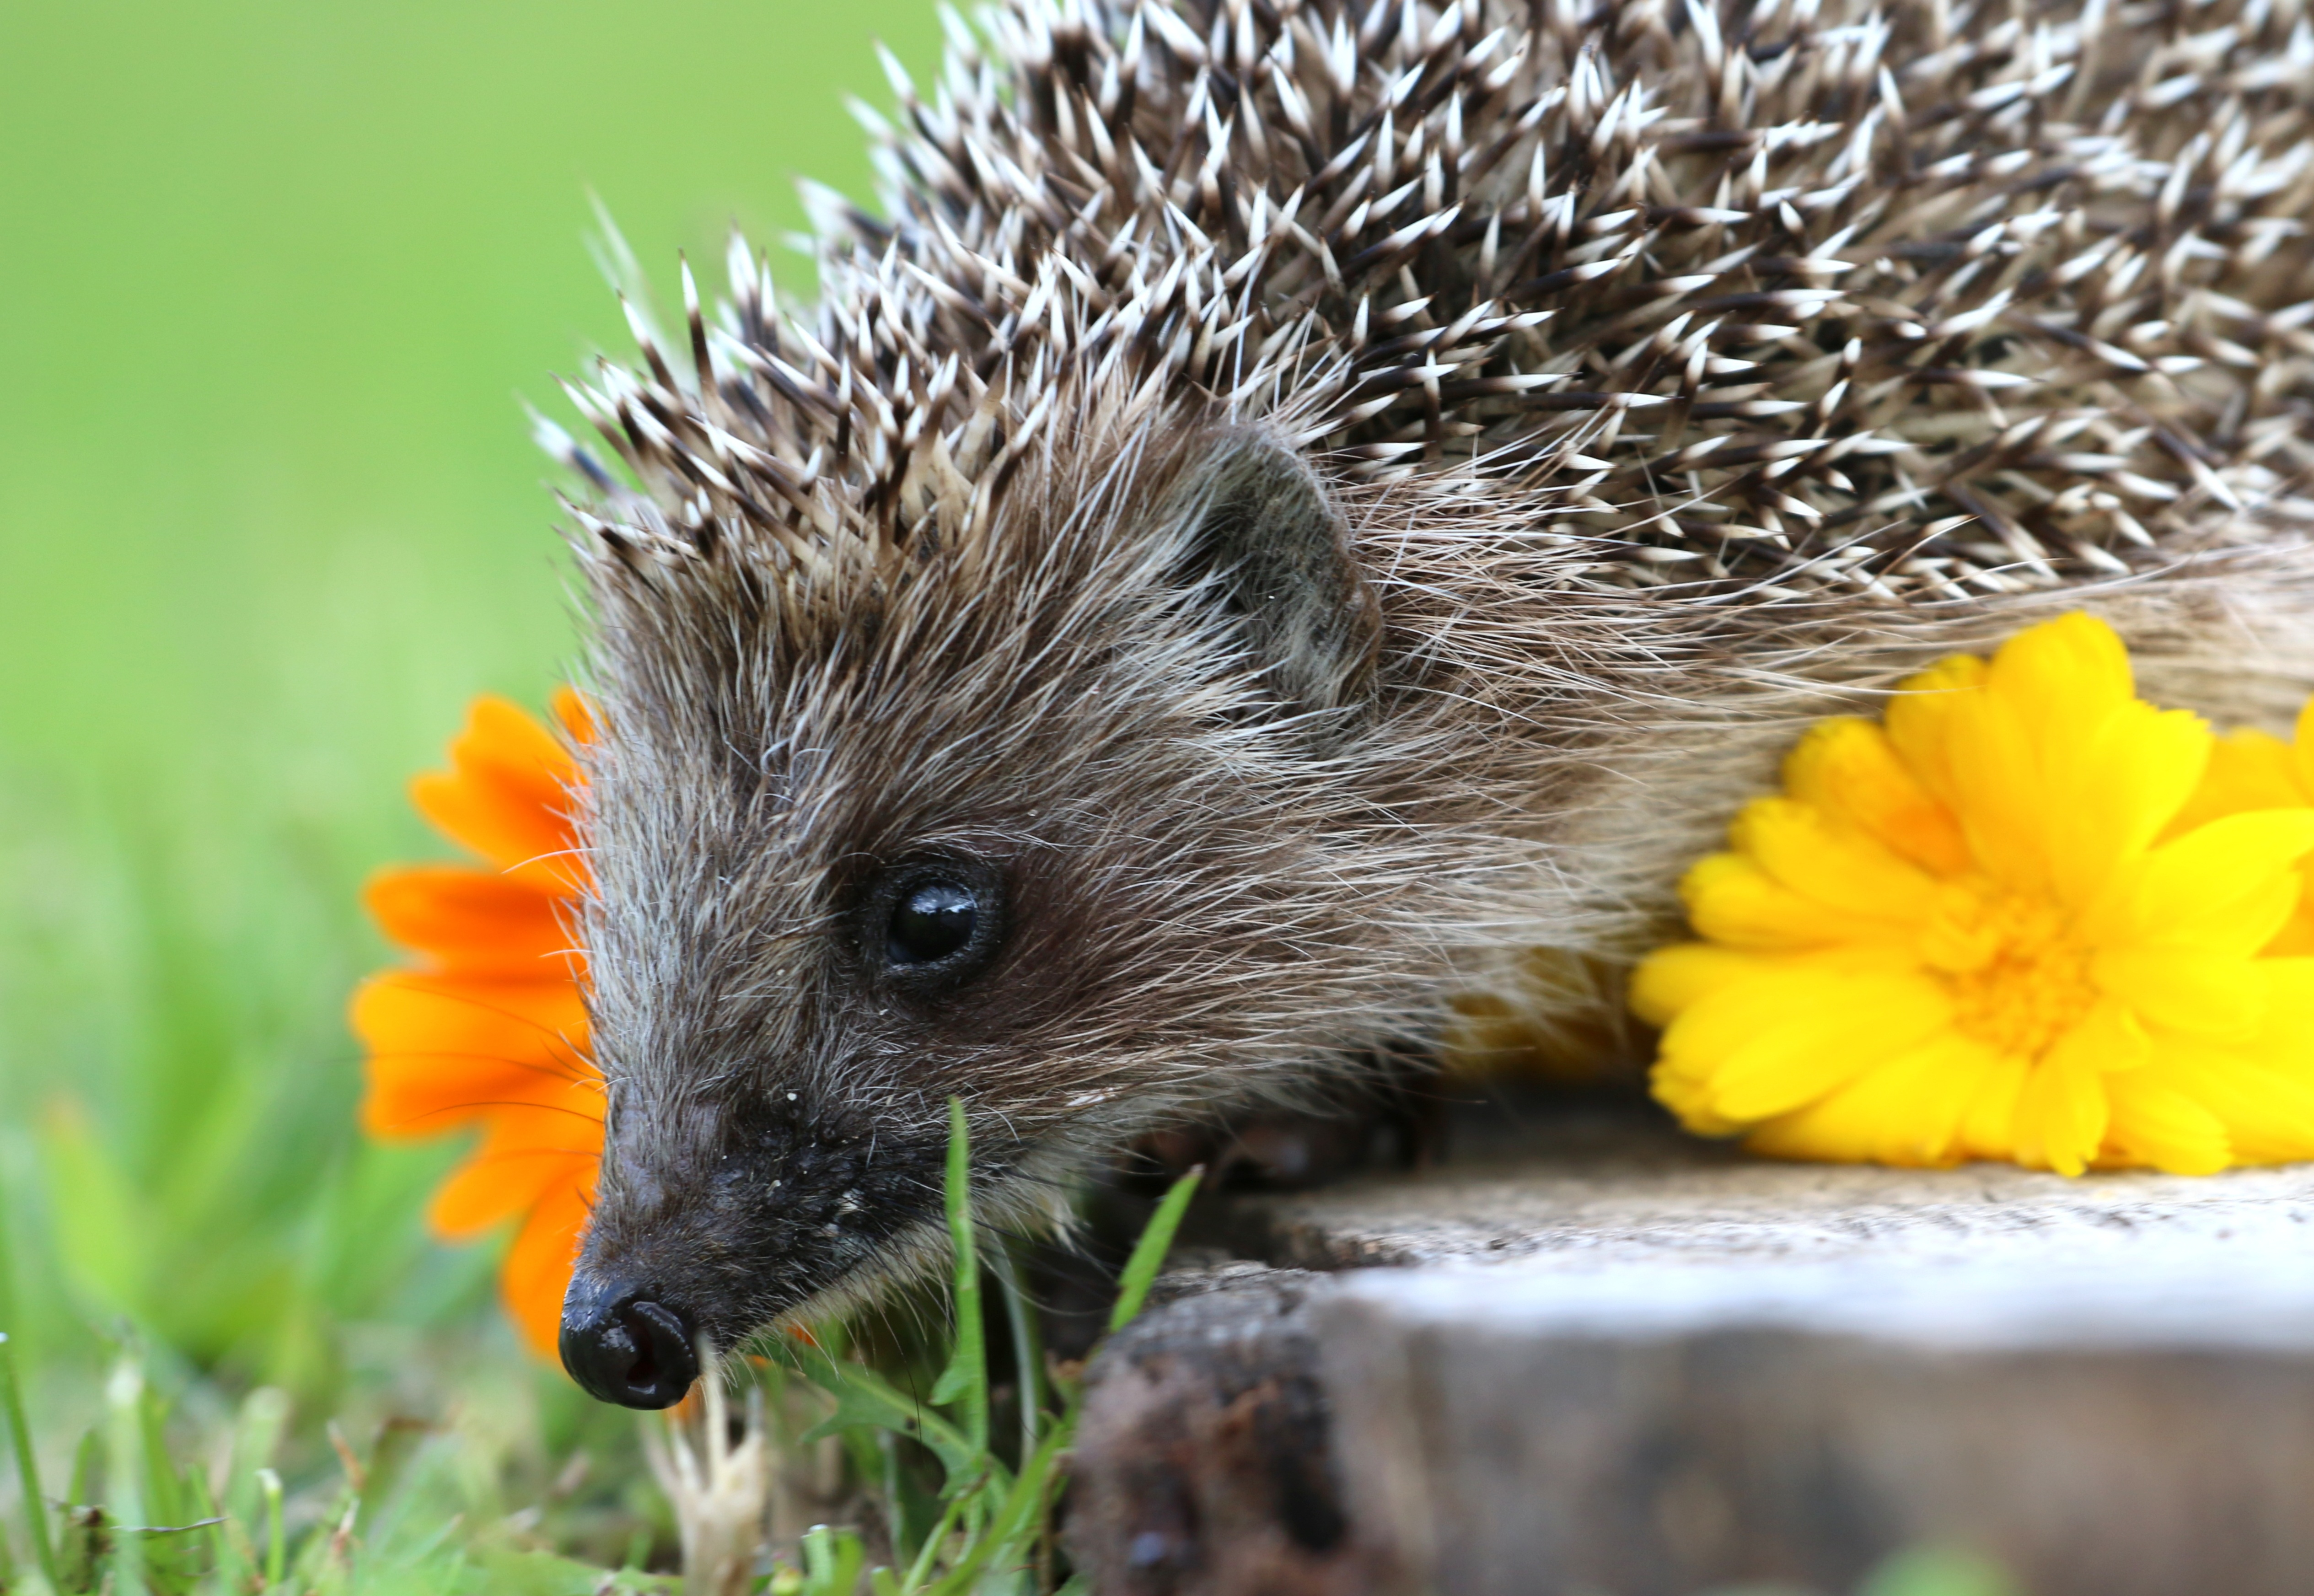 hedgehog wallpapers pictures images